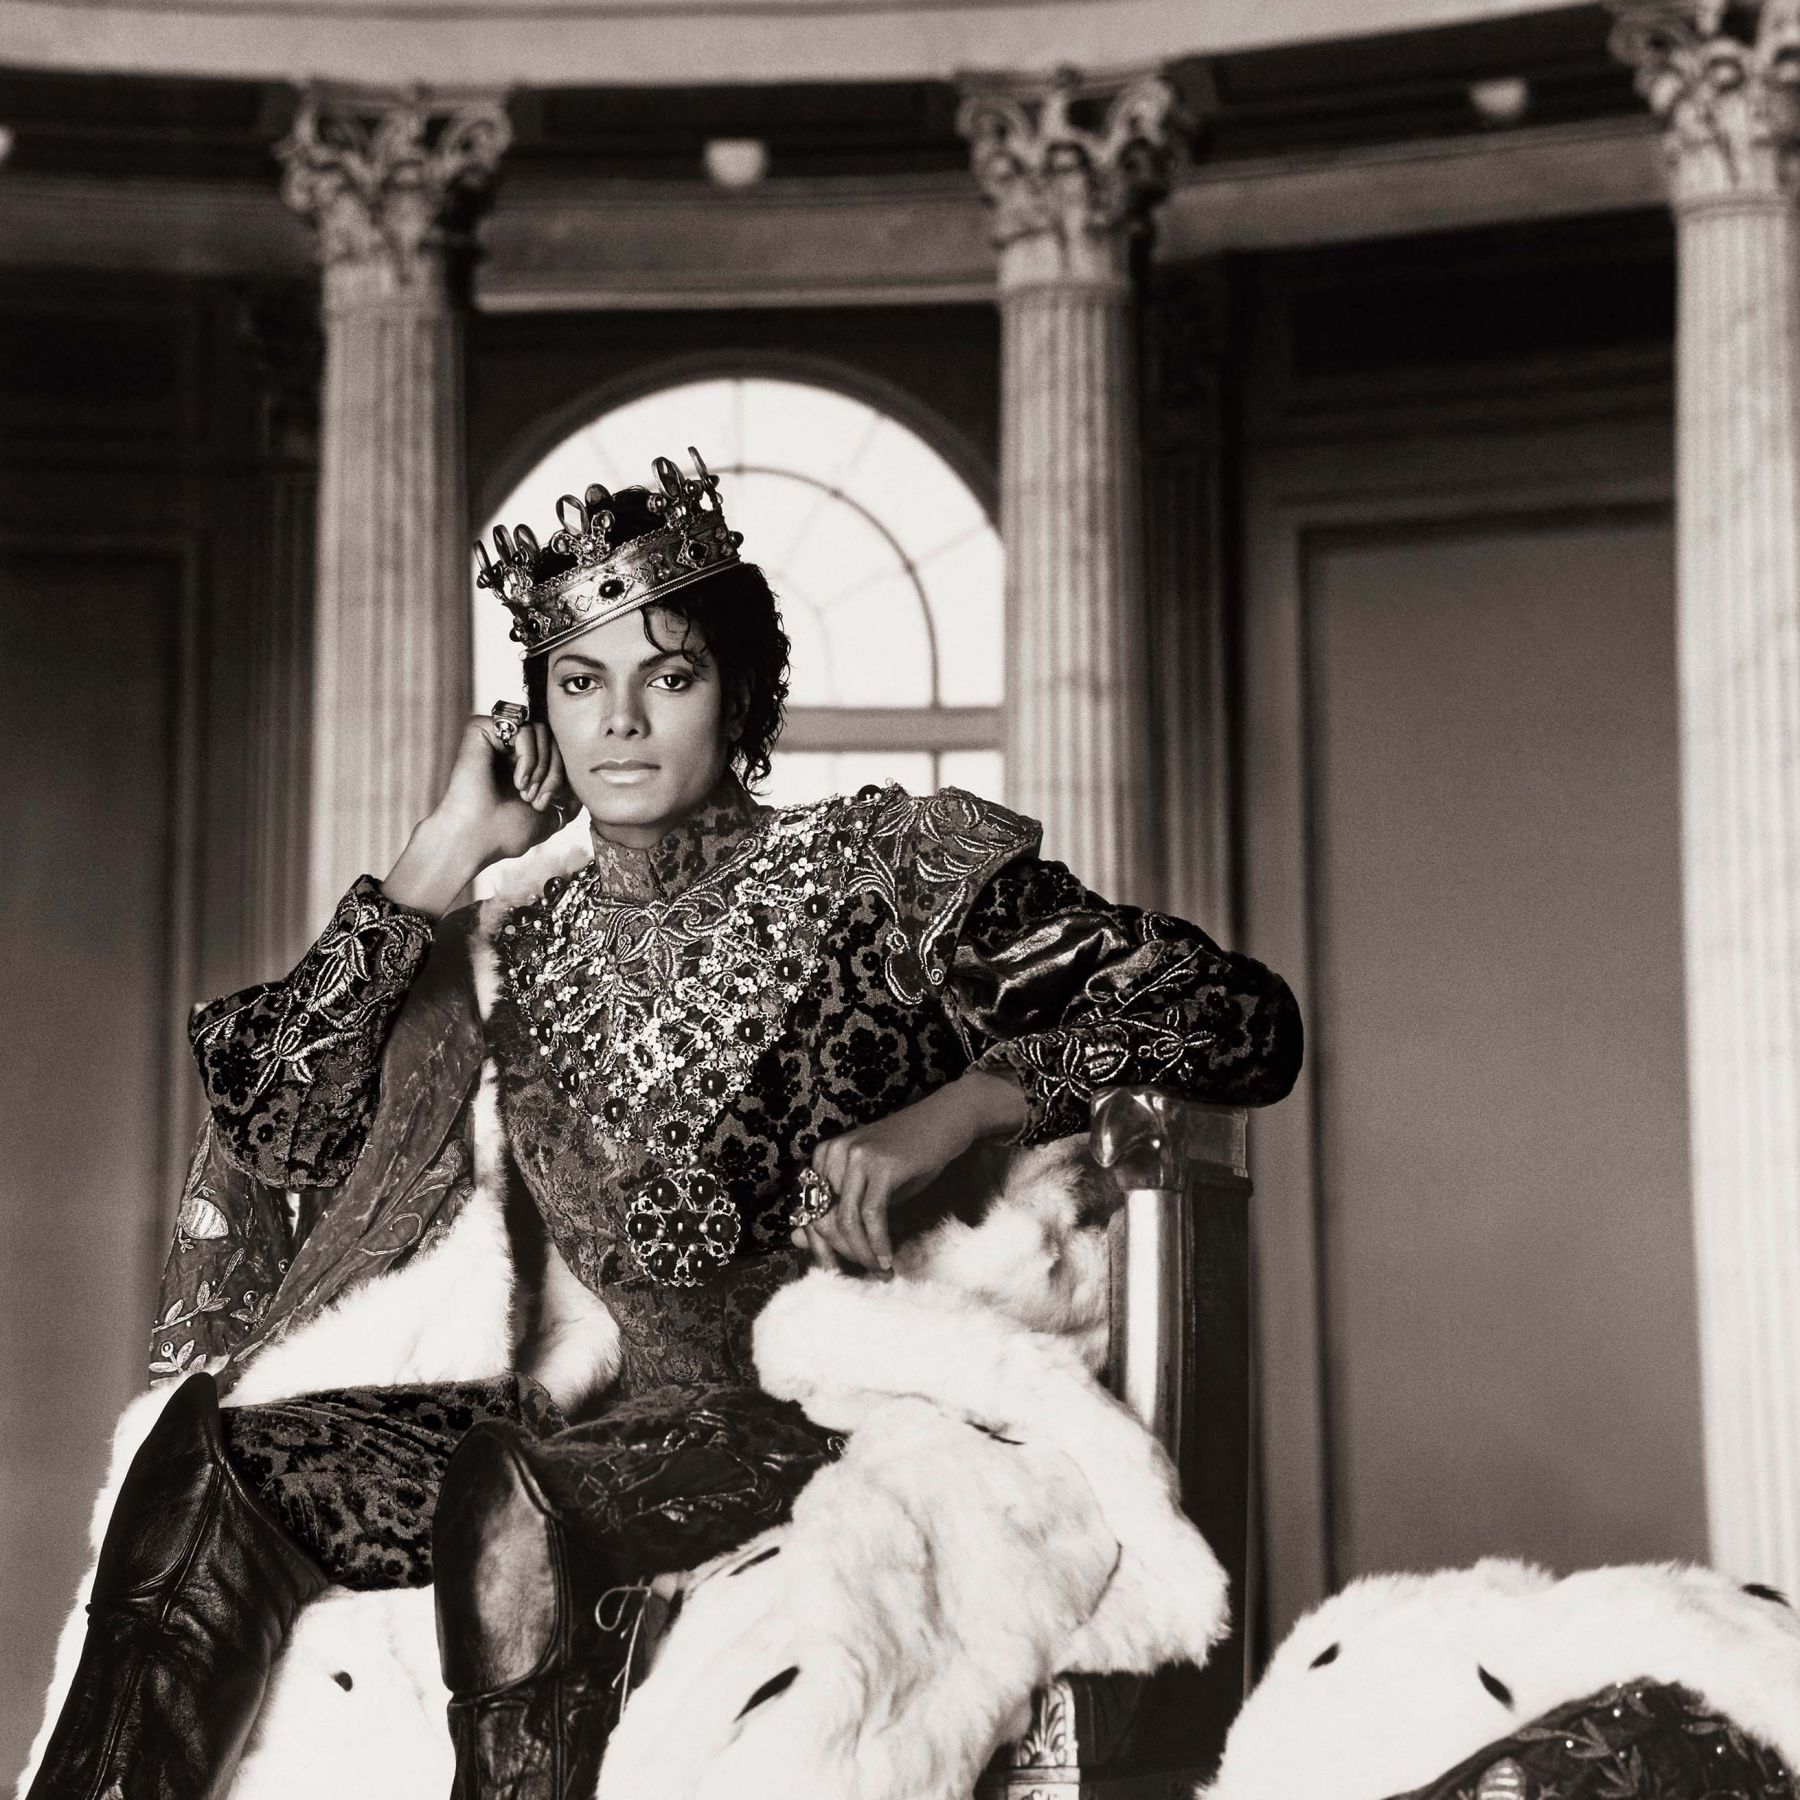 Michael Jackson, King, Los Angeles, 1985, Archival Pigment Print